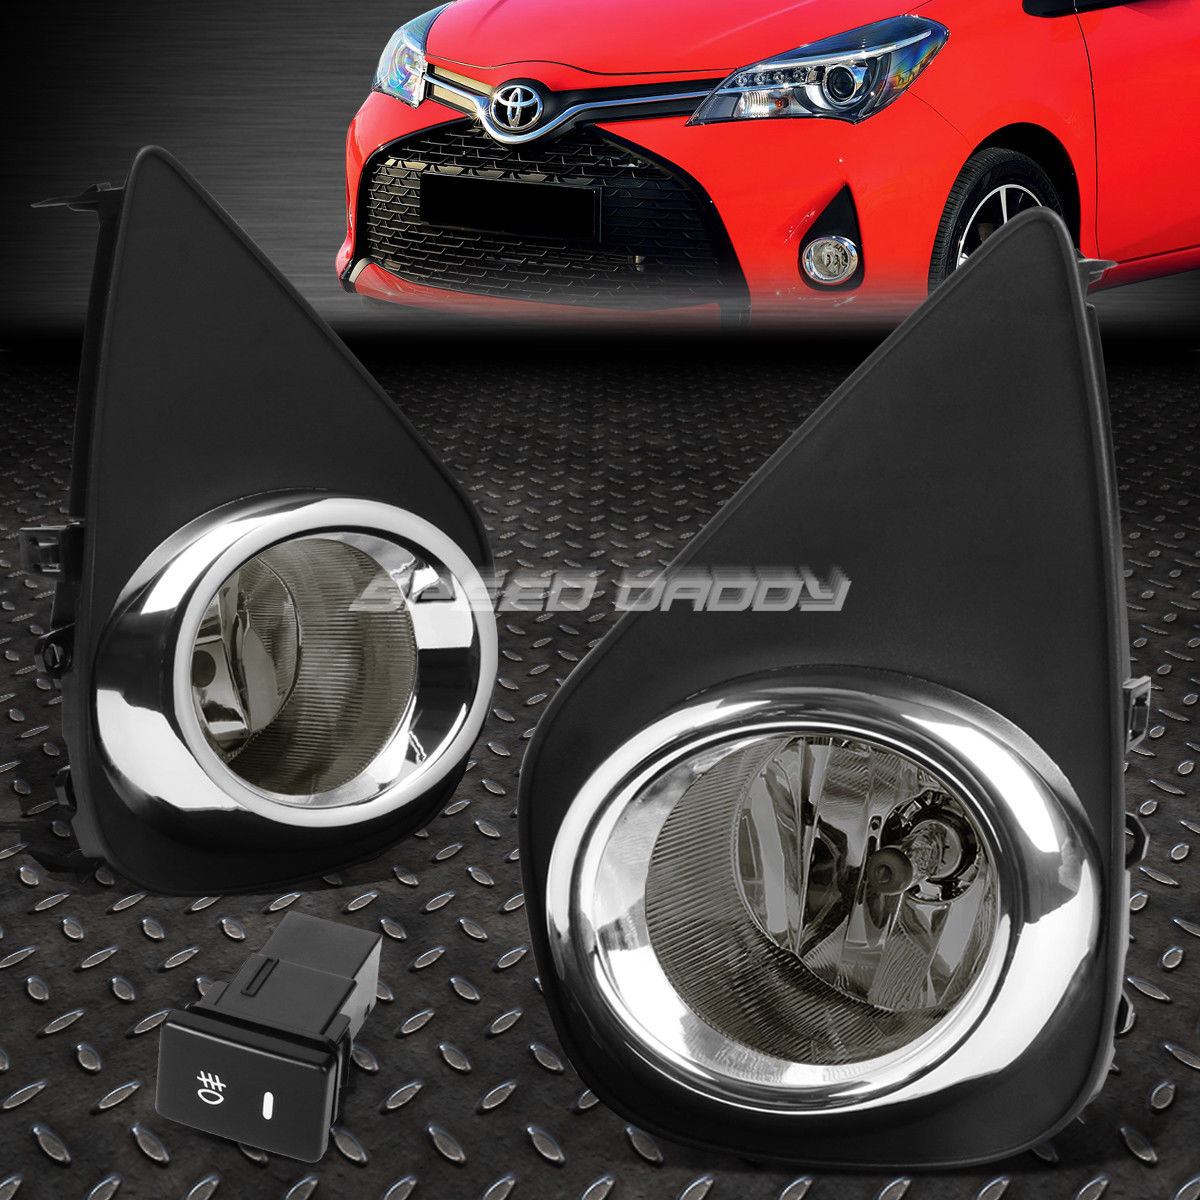 フォグライト FOR 15-16 TOYOTA YARIS XP130 2/3 DR SMOKED LENS OE DRIVING FOG LIGHT LAMP+SWITCH FOR 15-16 TOYOTA YARIS XP130 2/3 DR SMOKED LENS OE DRIVING FOGライトランプ+スイッチ